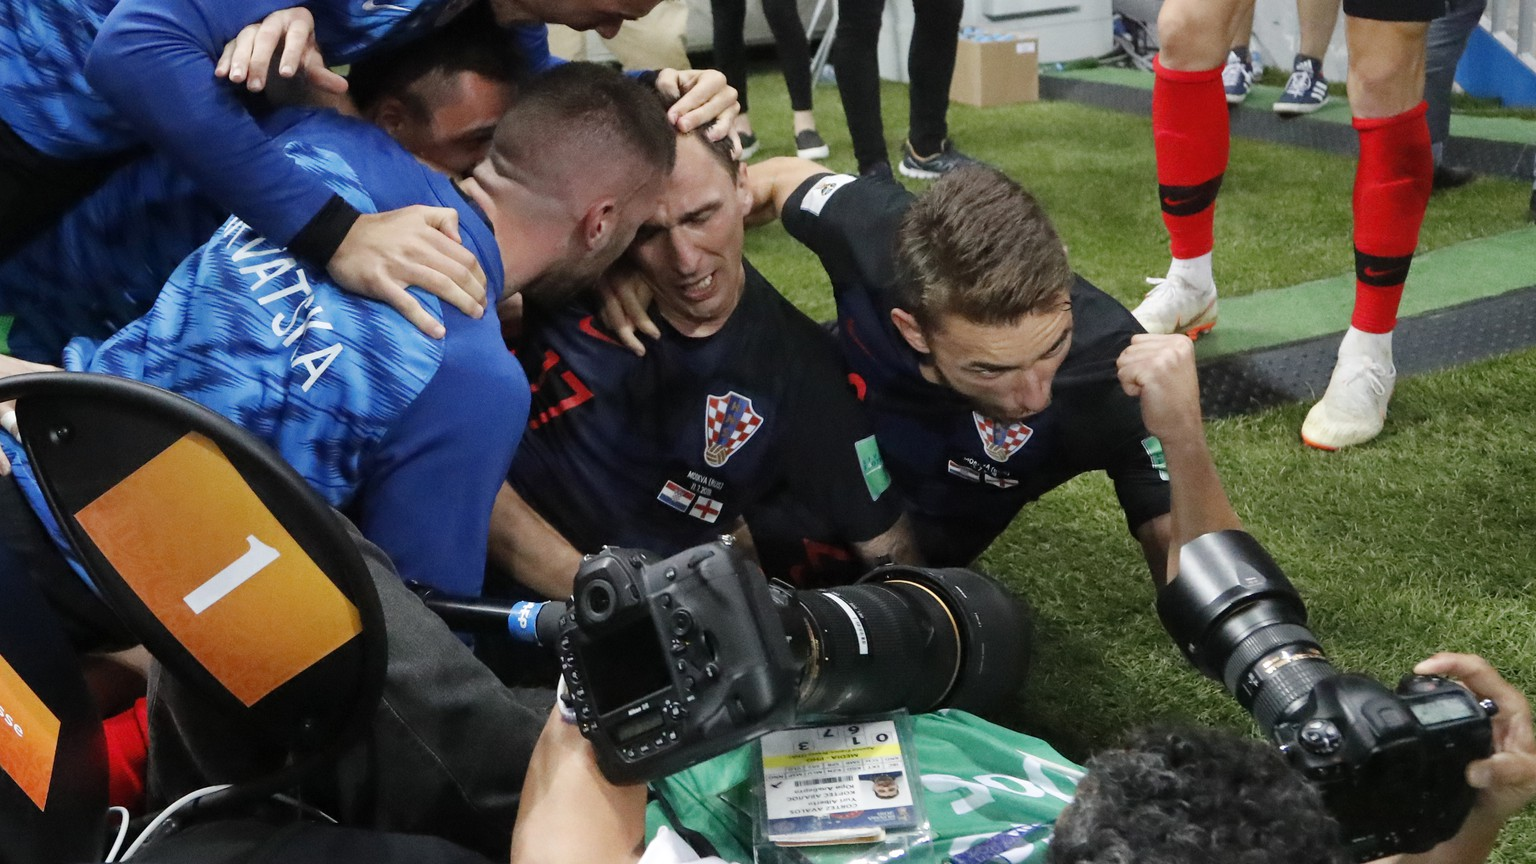 Croatia's Mario Mandzukic sits between his teammates after falling over a photographer when celebrating after scoring his side's second goal during the semifinal match between Croatia and England at the 2018 soccer World Cup in the Luzhniki Stadium in Moscow, Russia, Wednesday, July 11, 2018. (AP Photo/Frank Augstein)